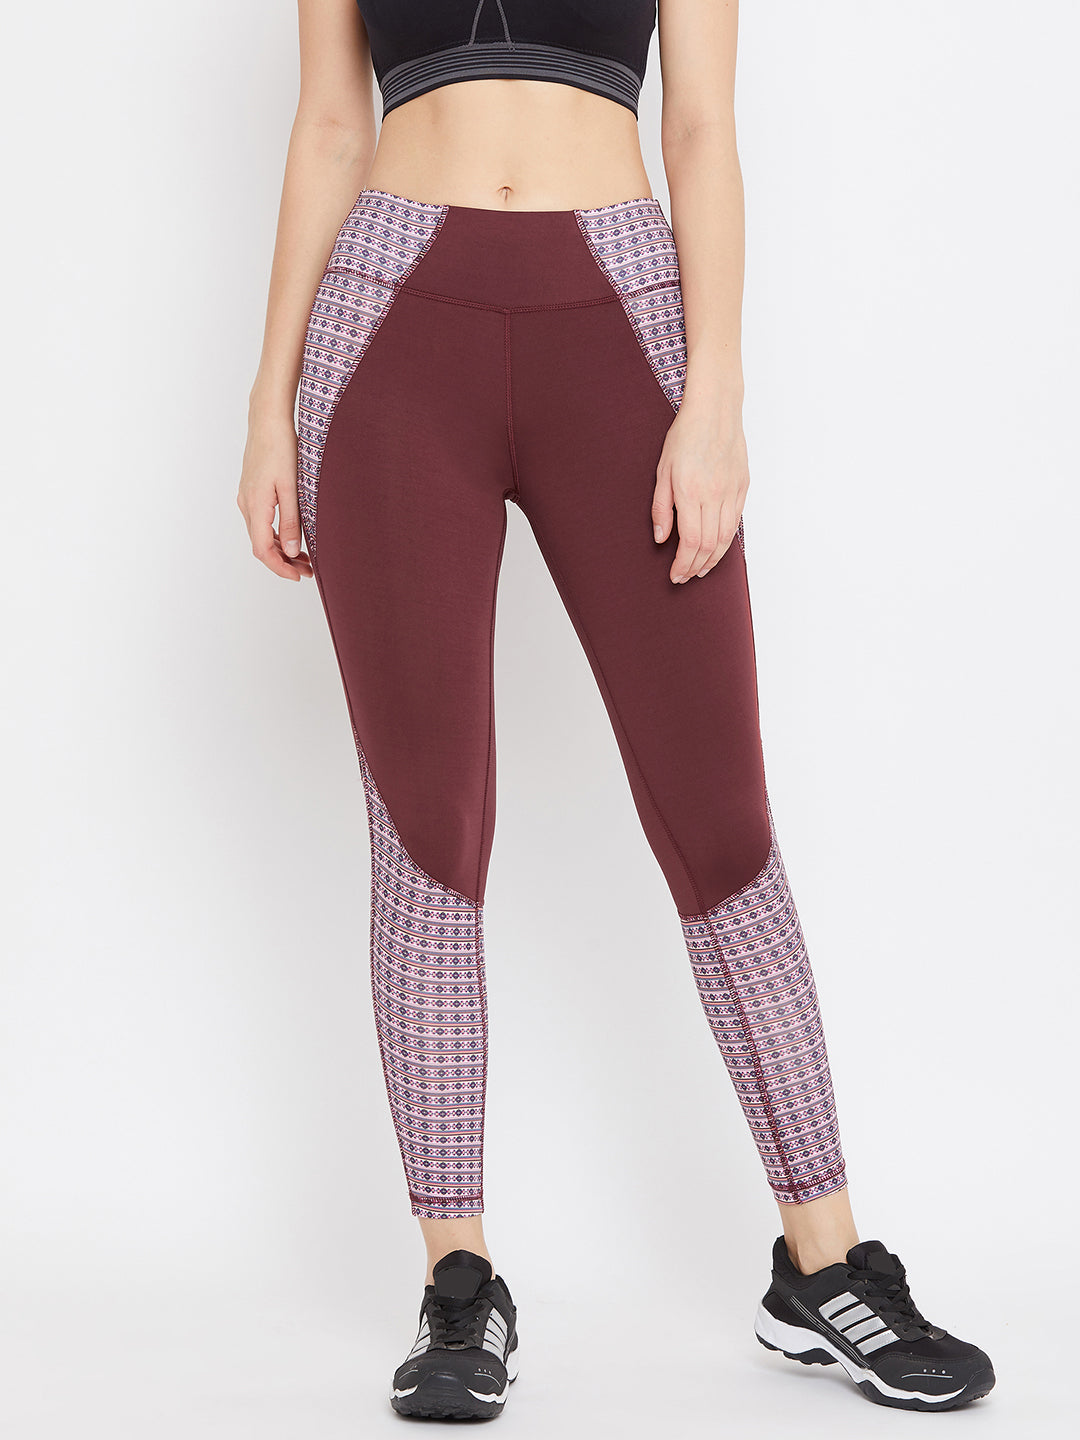 JUMP USA Women Maroon Printed Active Wear Tights